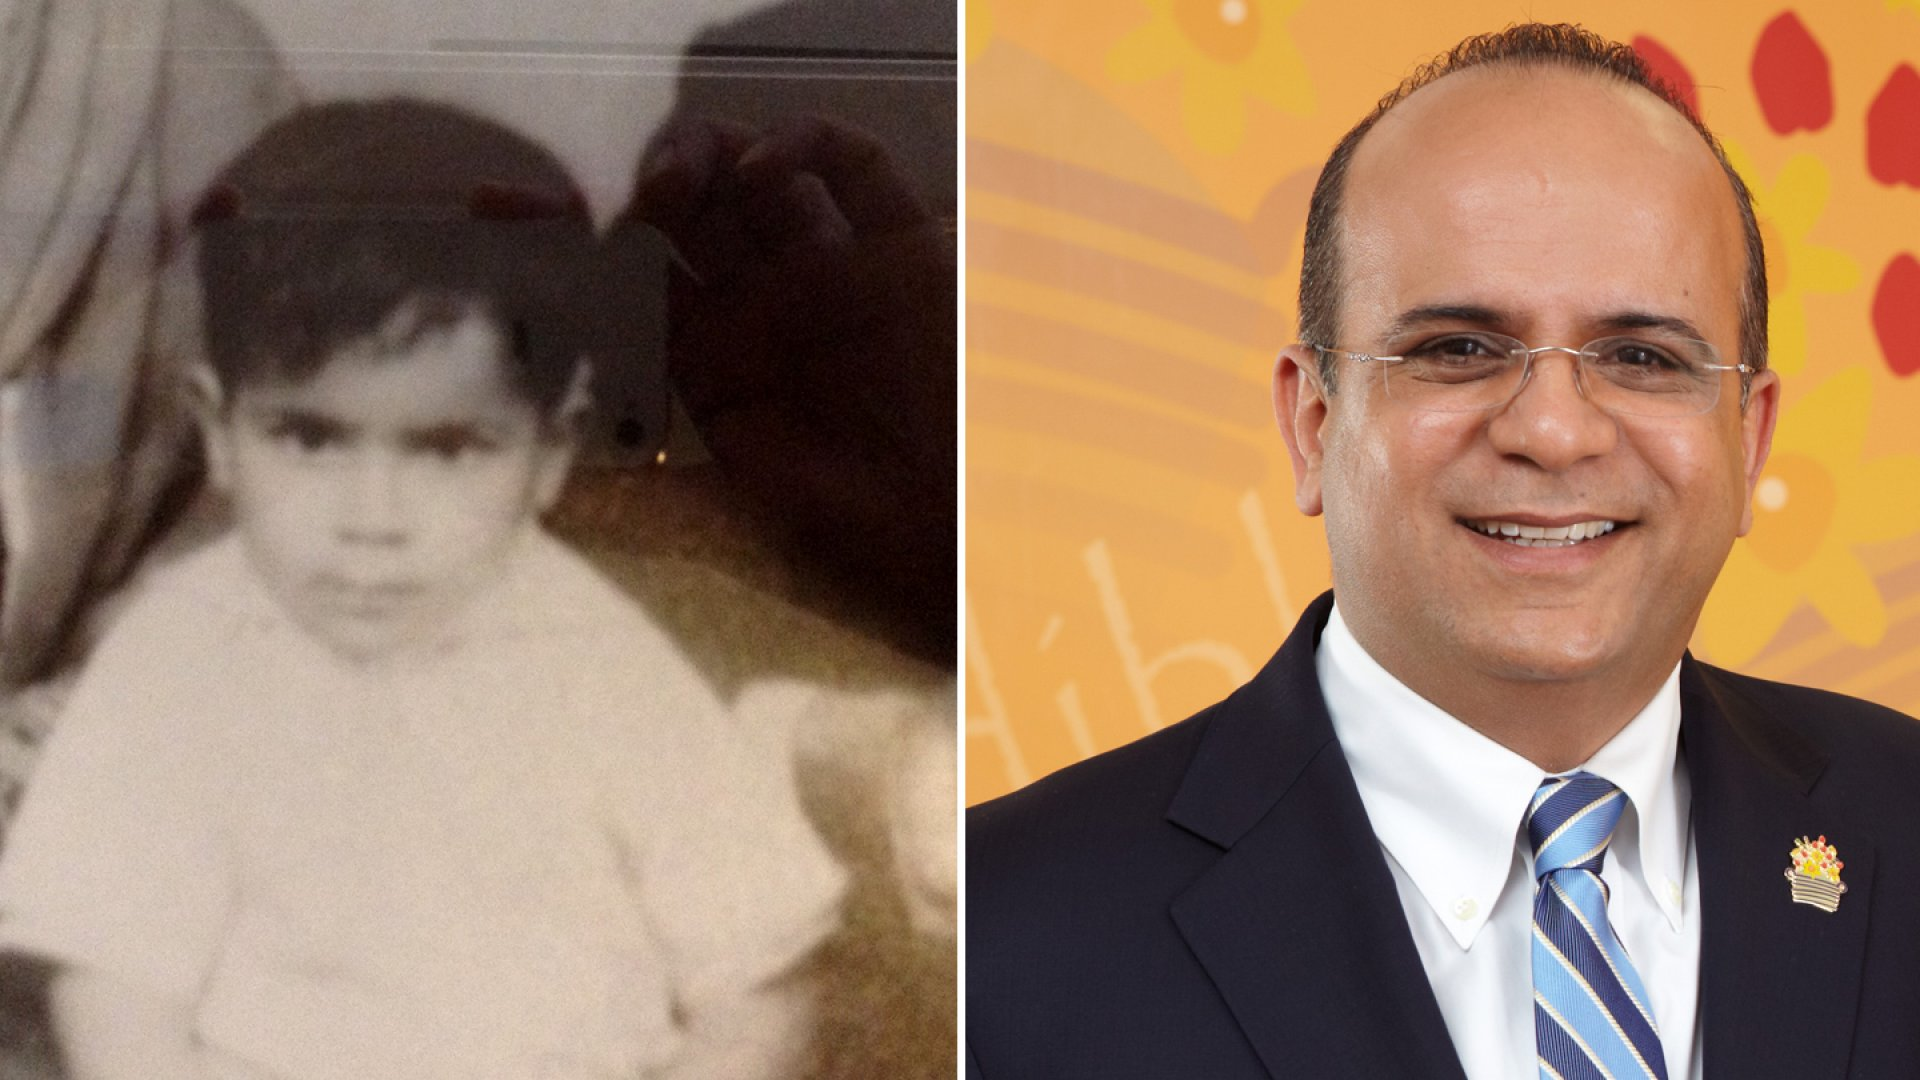 Tariq Farid pictured as a child on the left and now on the right.